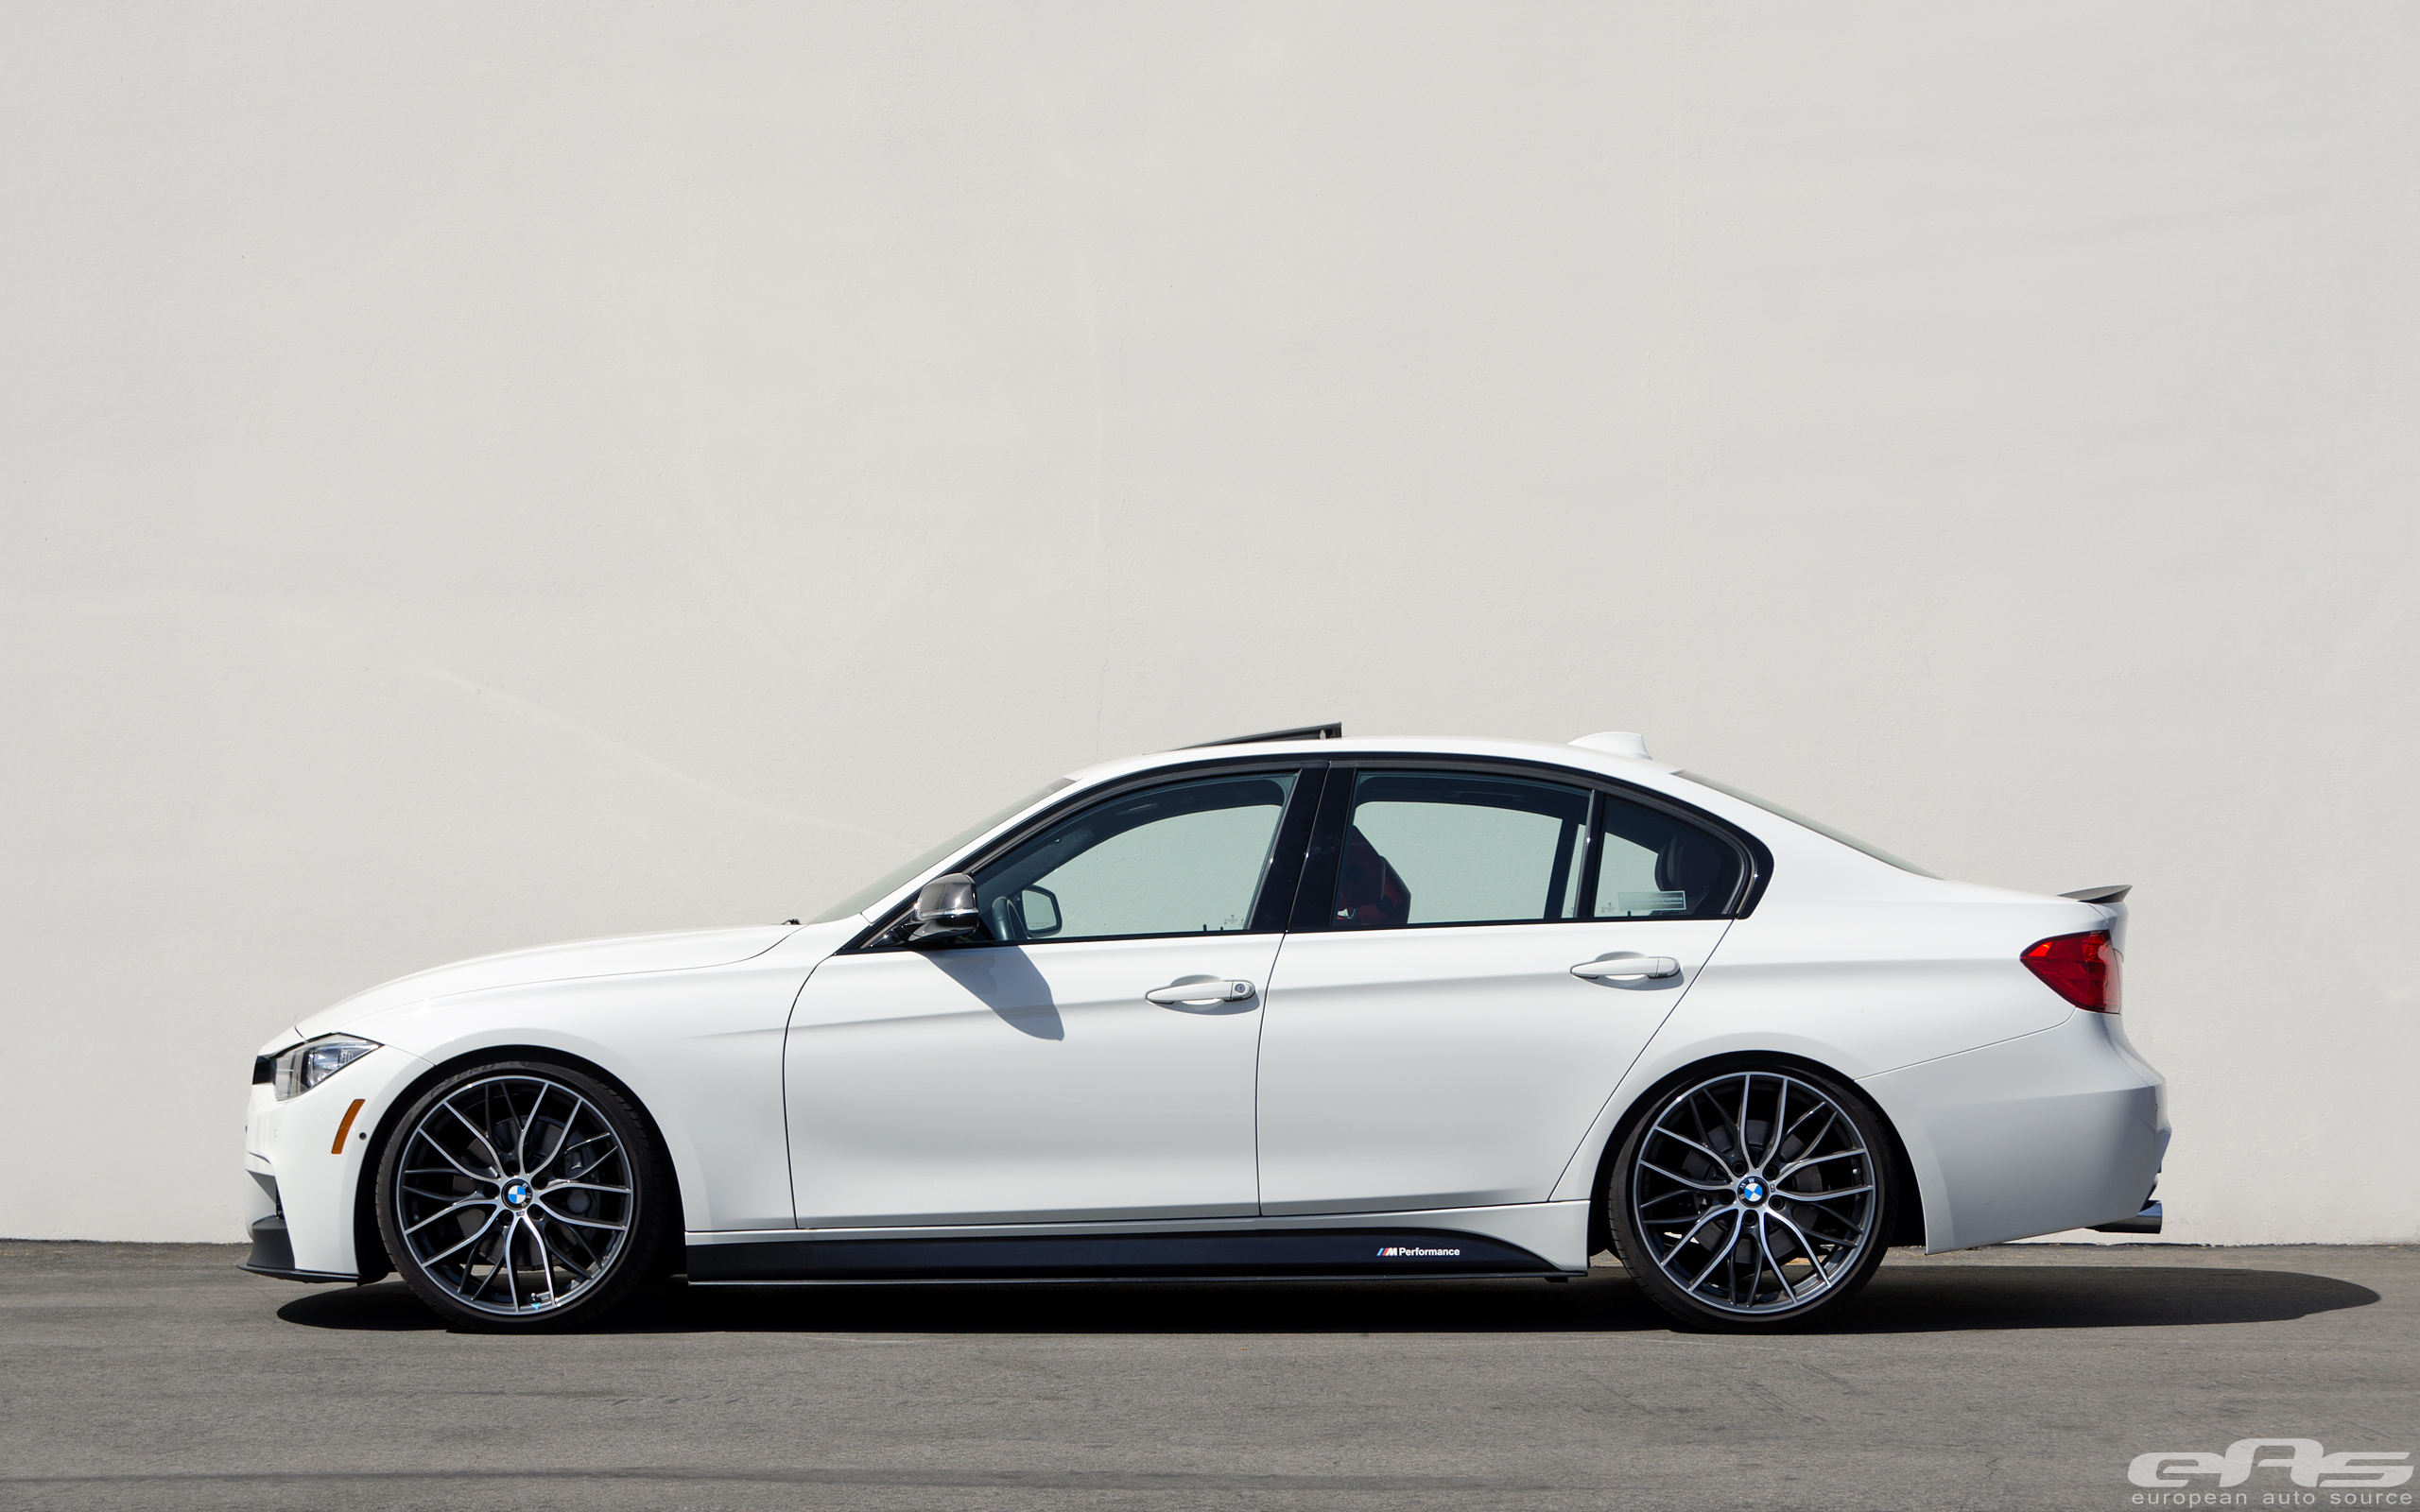 bmw m performance f30 335i gets lowered bmw performance. Black Bedroom Furniture Sets. Home Design Ideas